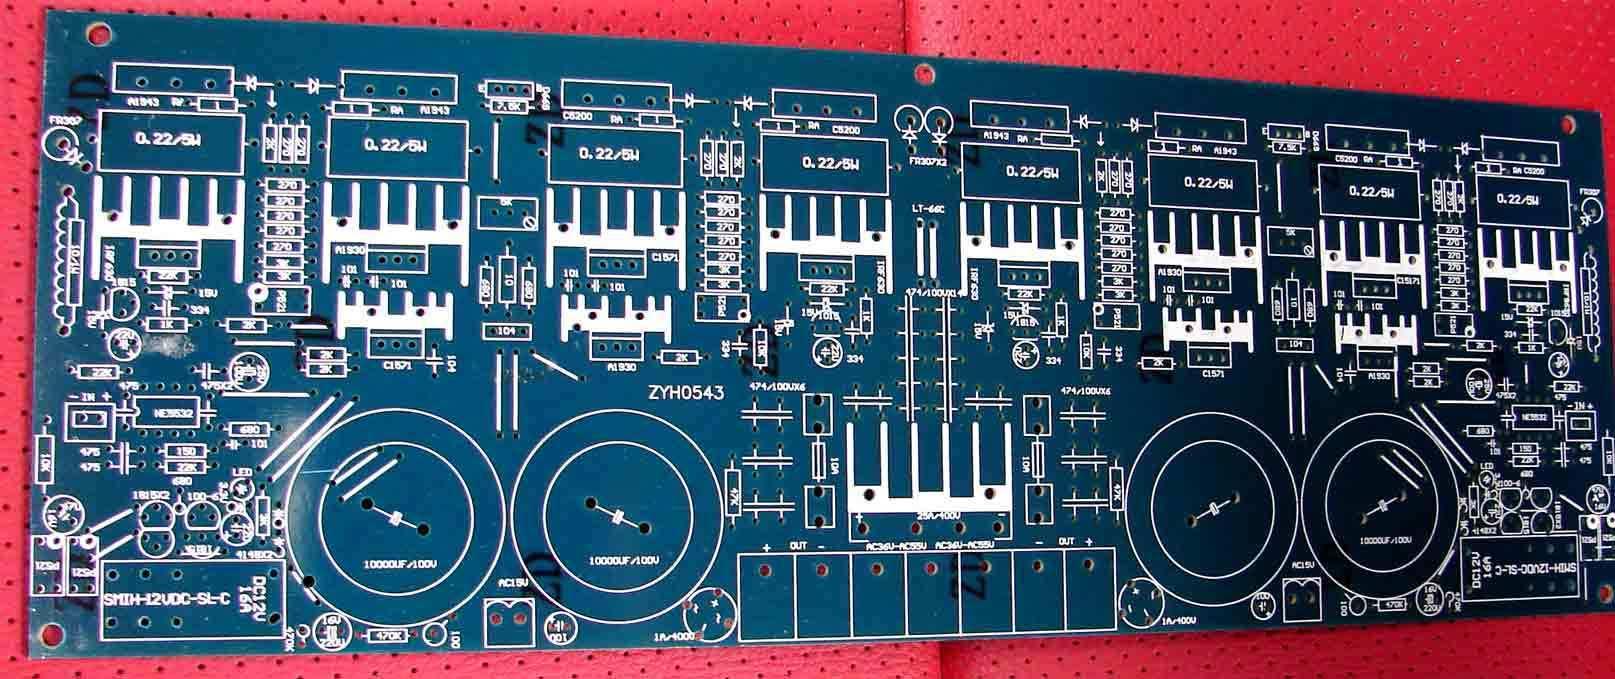 Usd 1170 High Power To Tube 500w 5532 Drive Eight 25e Pcb Printed Circuit Board Ideal Part Toshiba Amplifier 0543